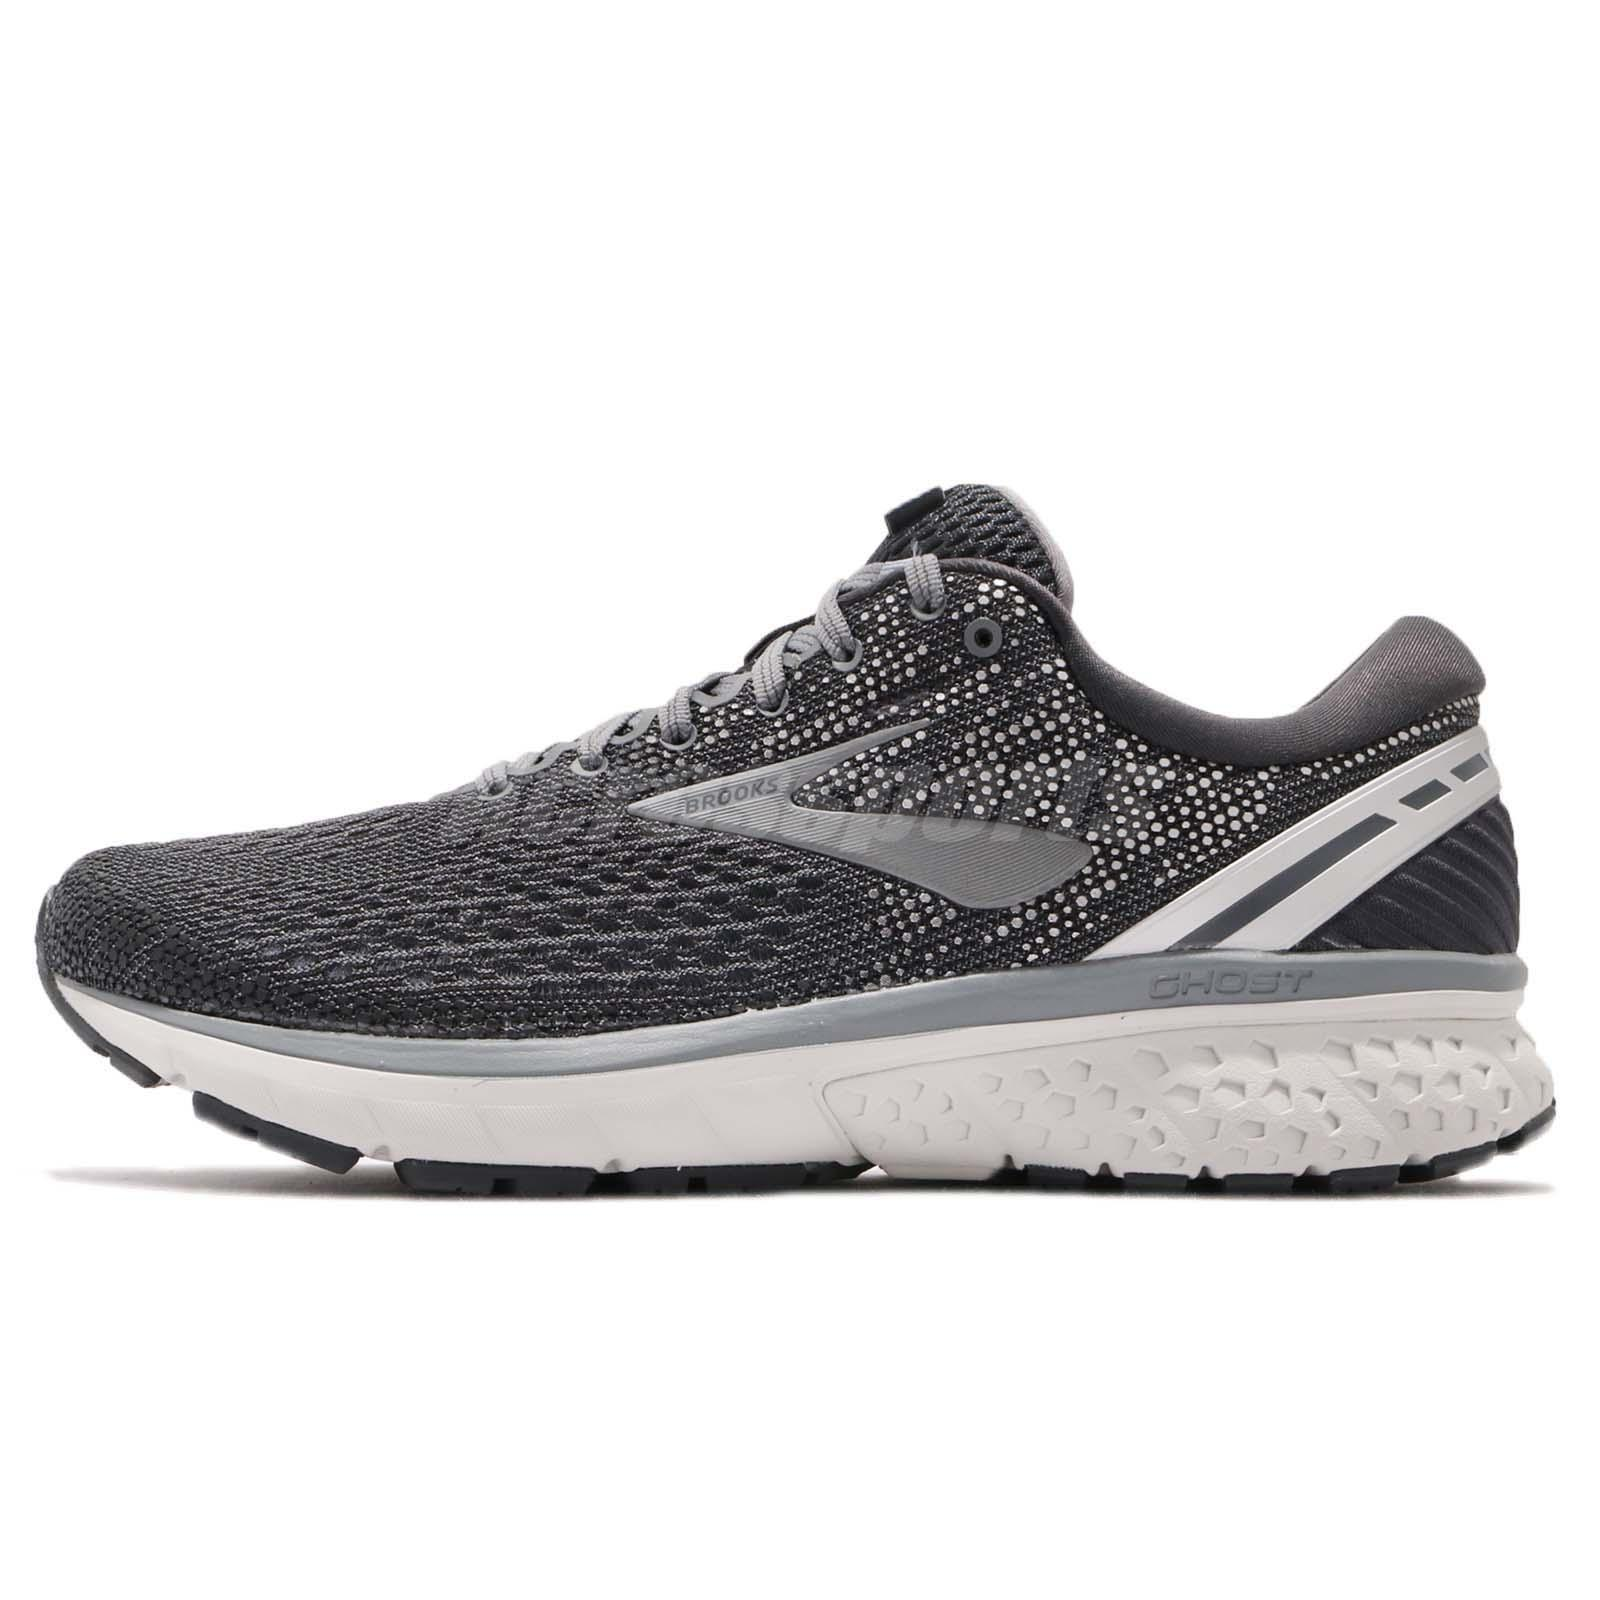 9d18feee4951b Details about Brooks Ghost 11 2E Wide Ebony Grey Silver Men Running Shoes  Sneakers 110288 2E